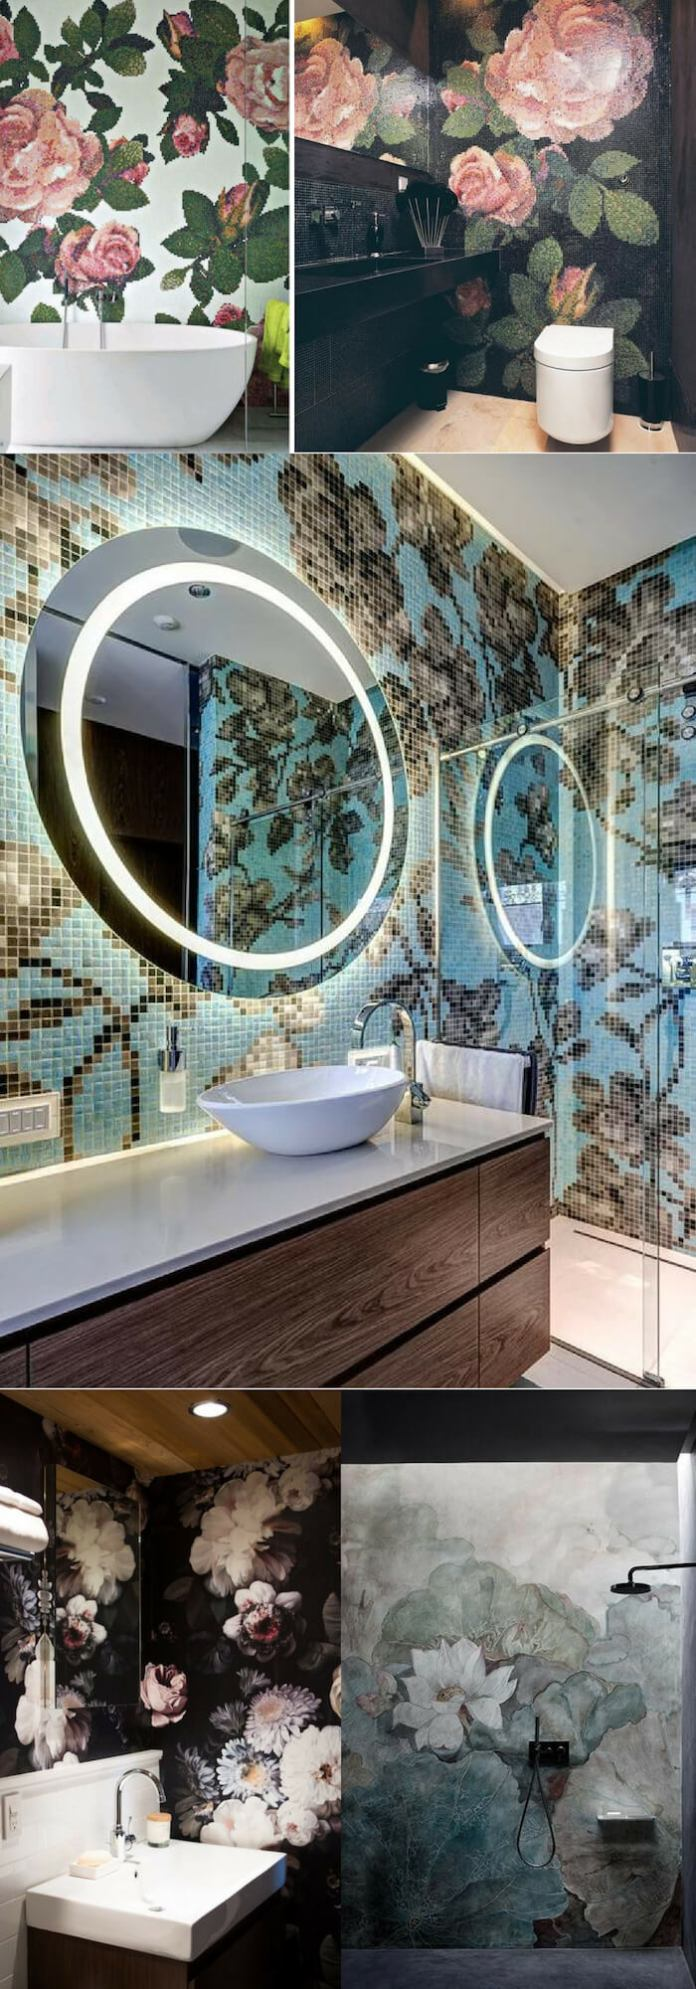 Flower wall | Unique Wall Tile Ideas for Bathroom Design